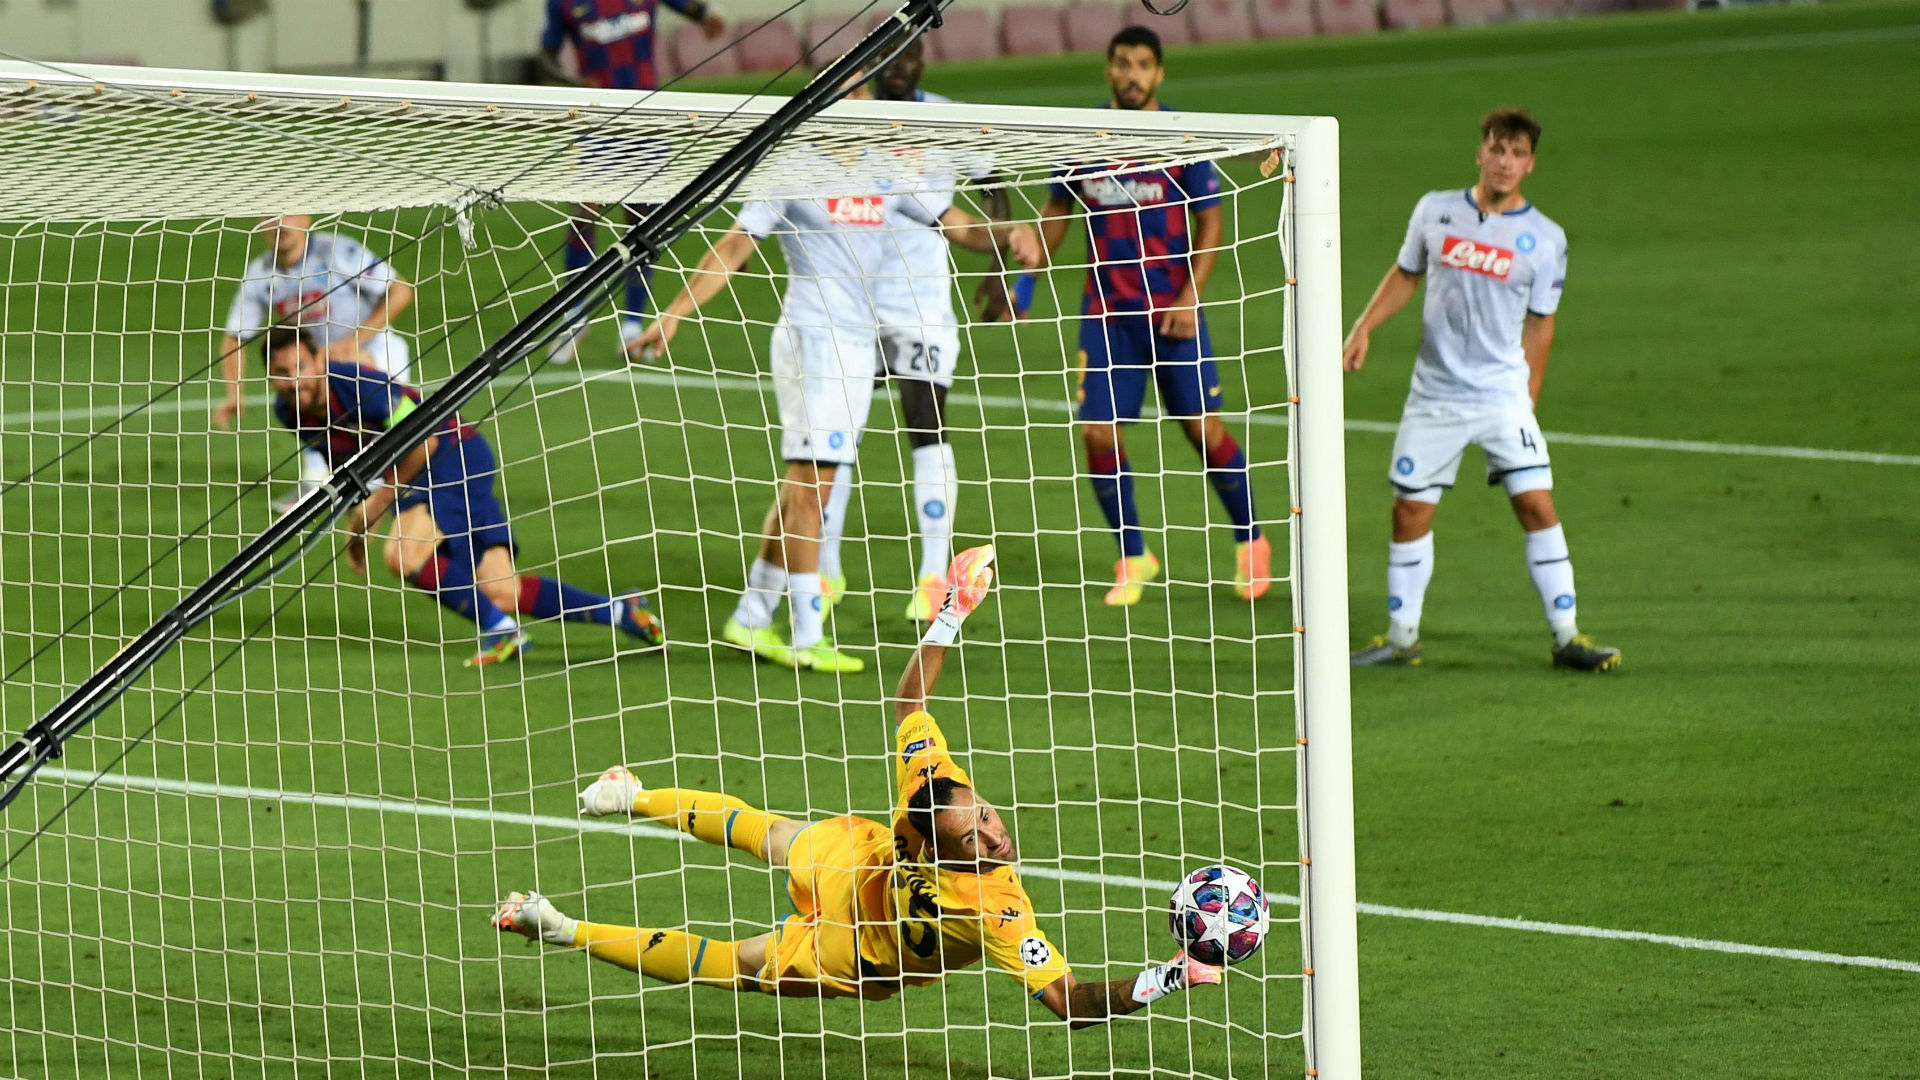 Barcelona 3 Vs 1 Napoli (Agg: 4 - 2) (Europa Champions League) Highlights